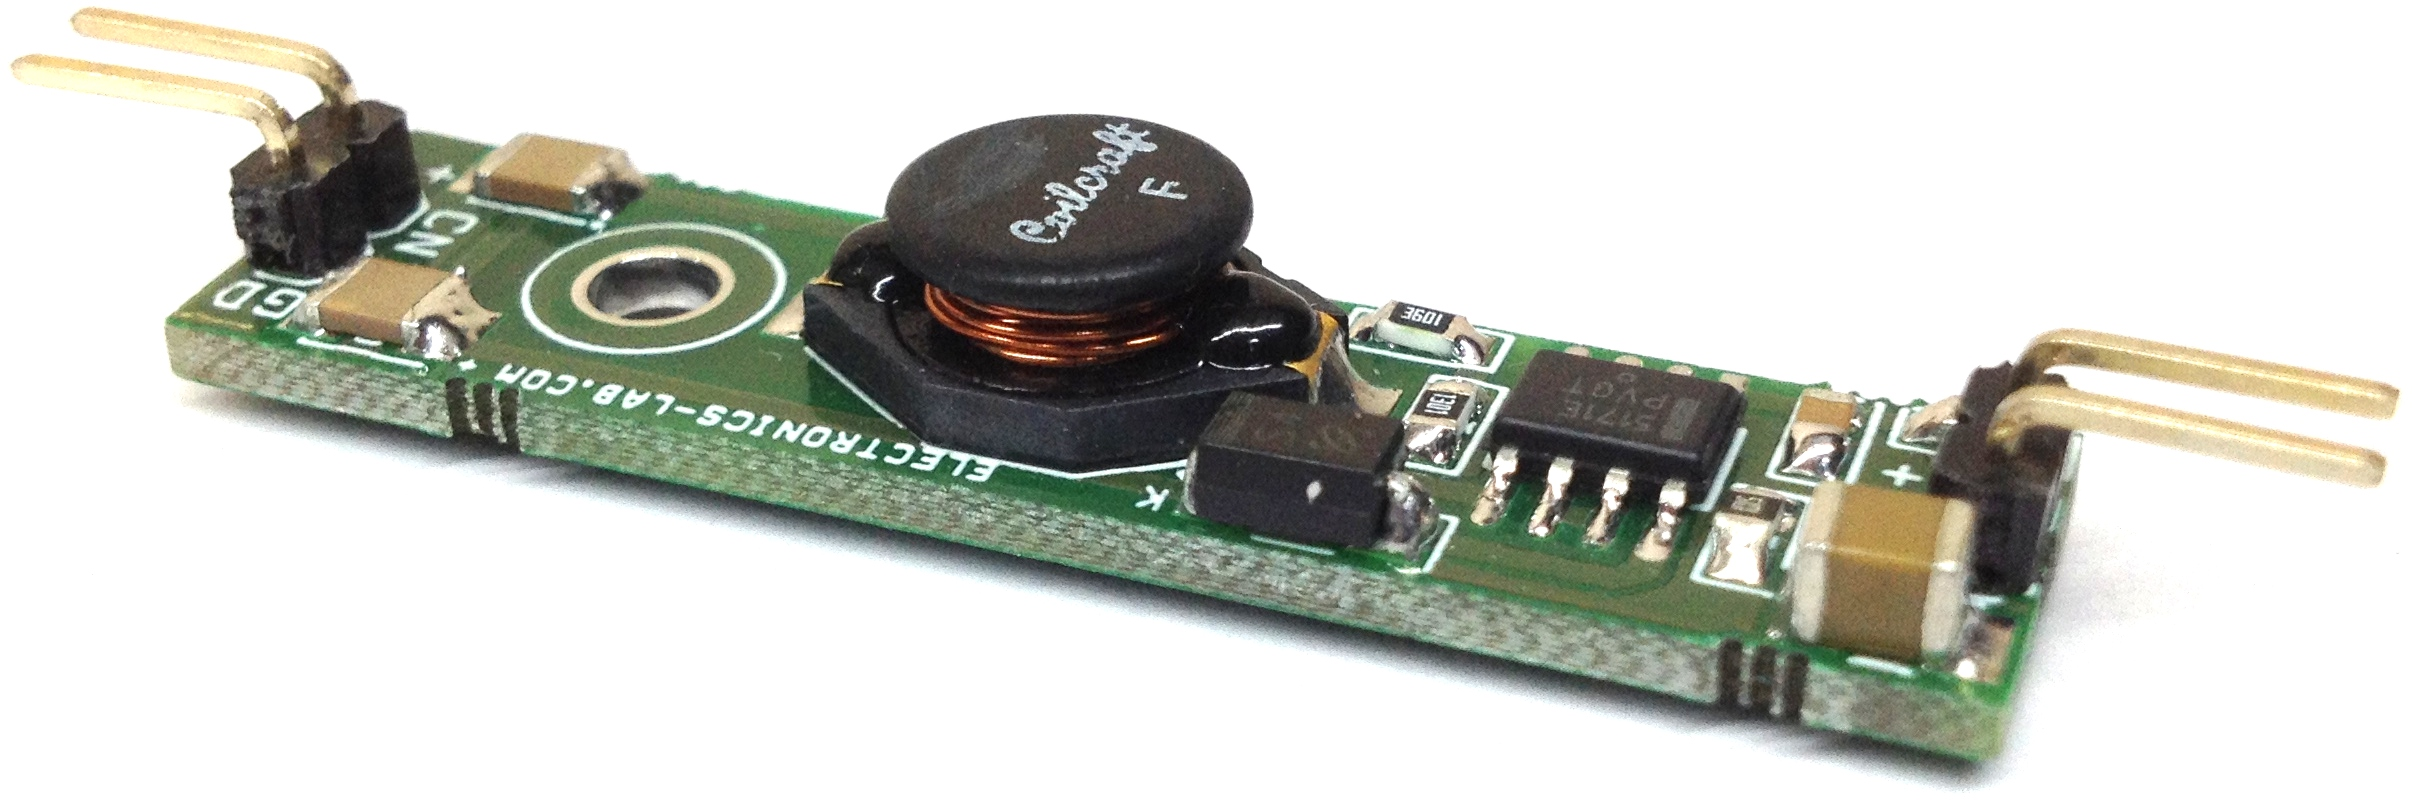 Single 18650 LiPo Battery to 5V Boost Converter